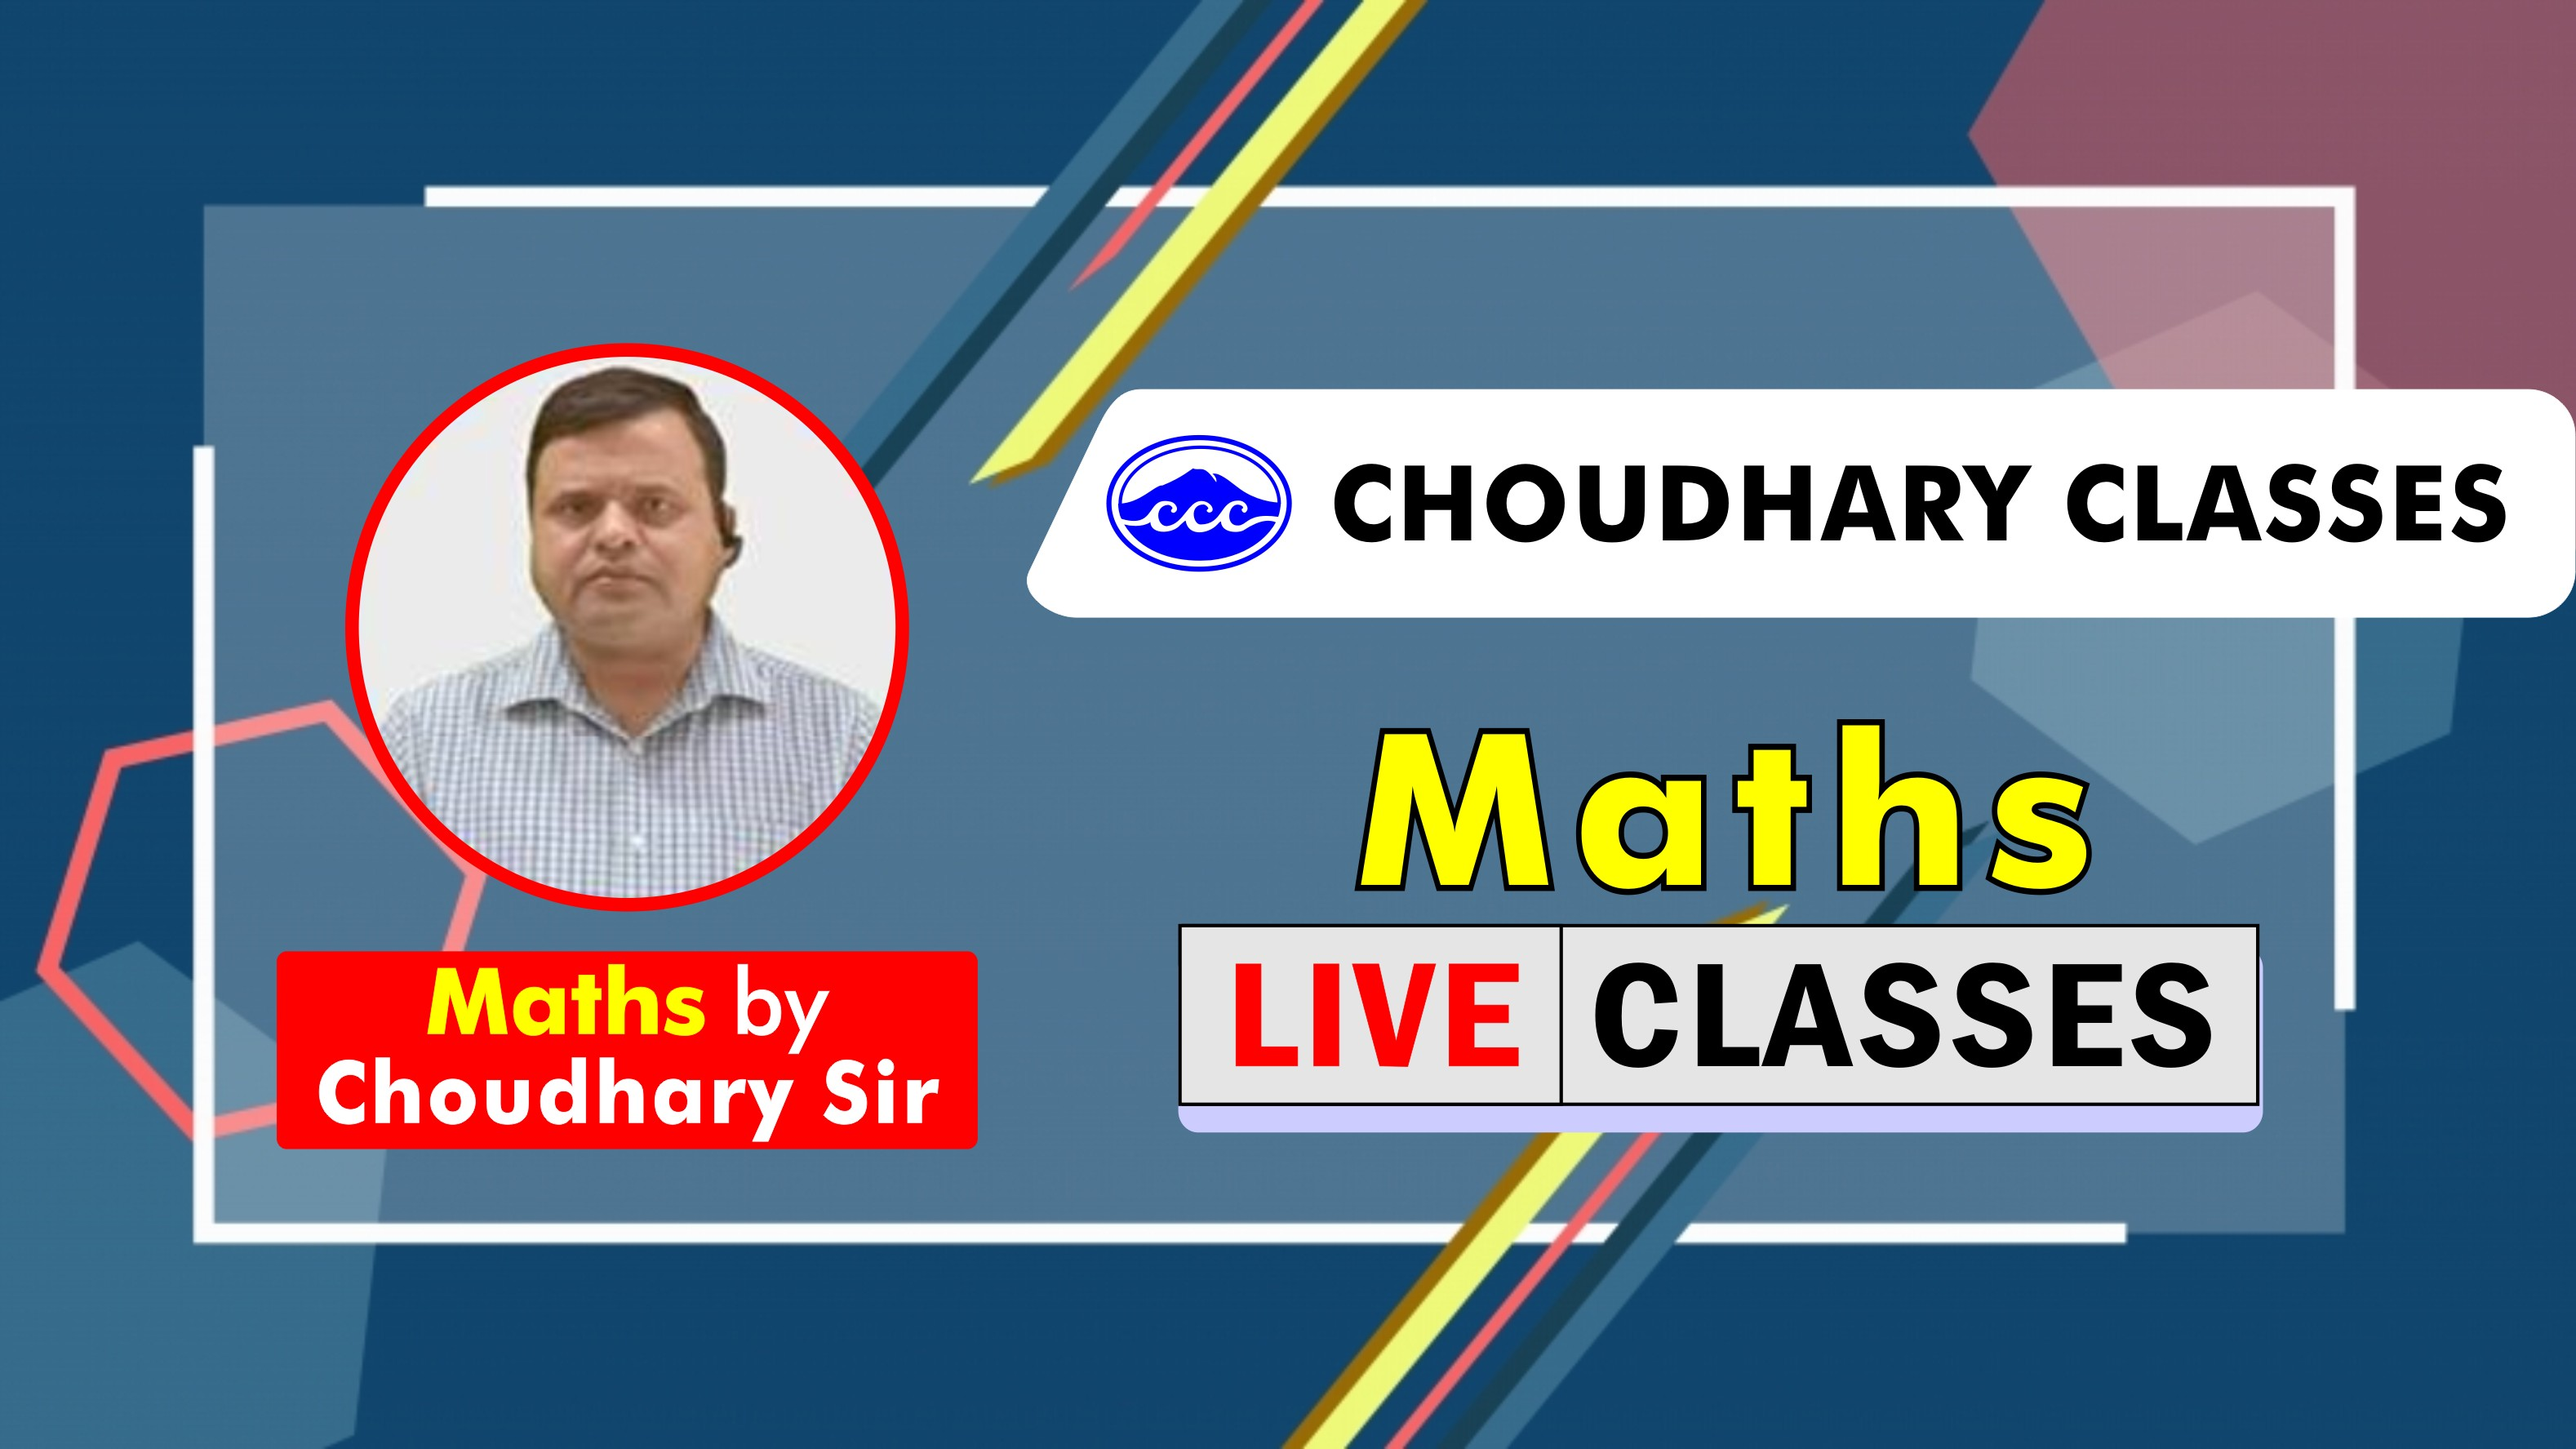 Session : 53 | Profit & Loss by Choudhary Sir